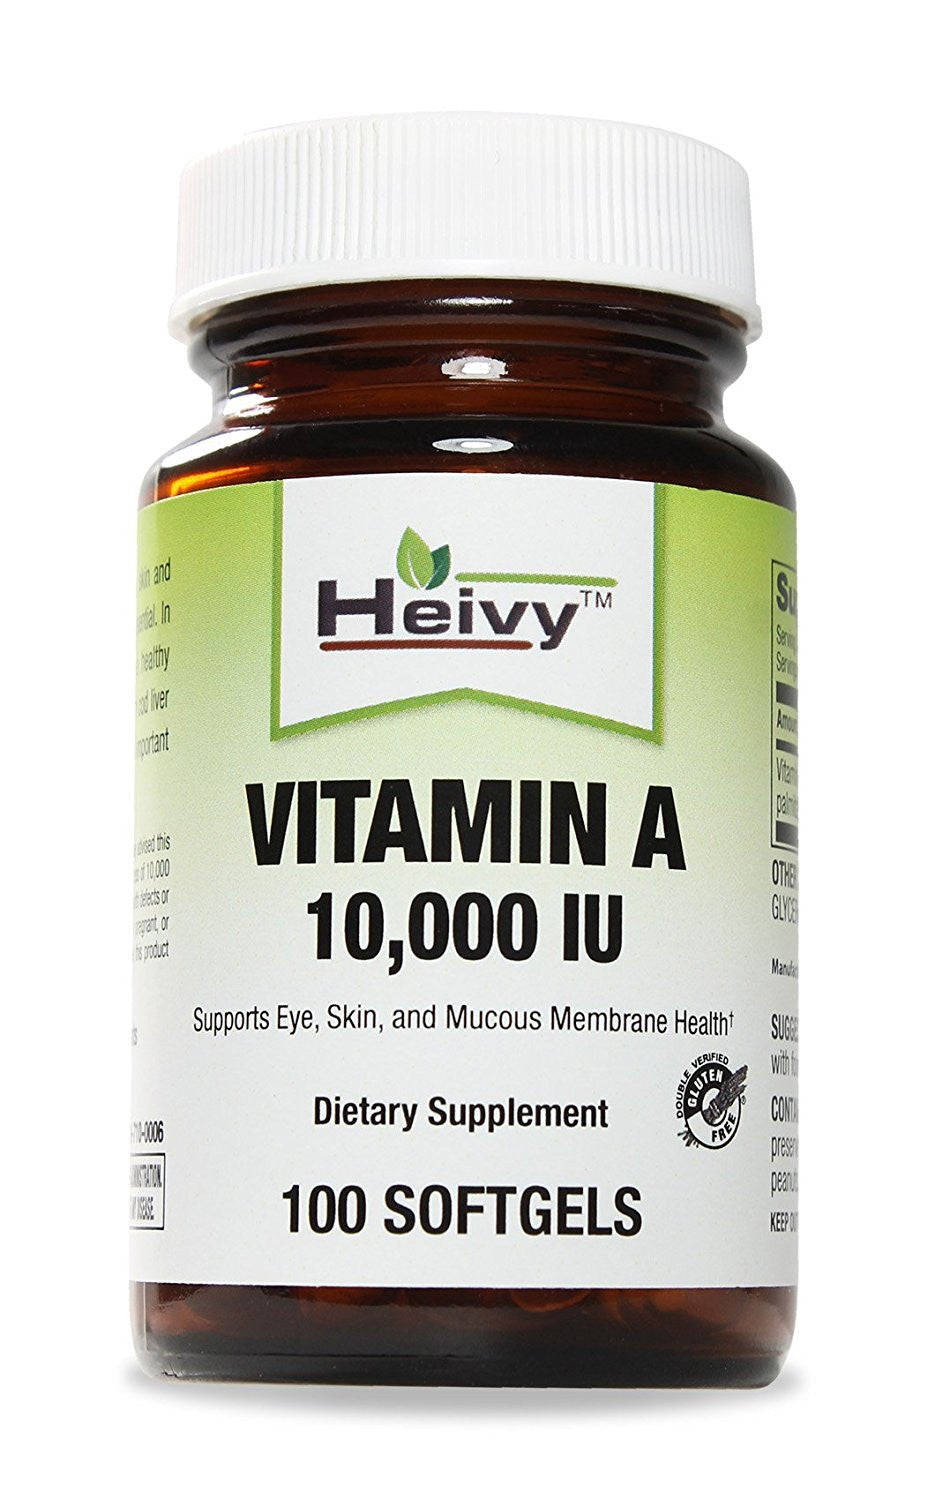 Vitamin A 10,000 IU, 100 Softgels